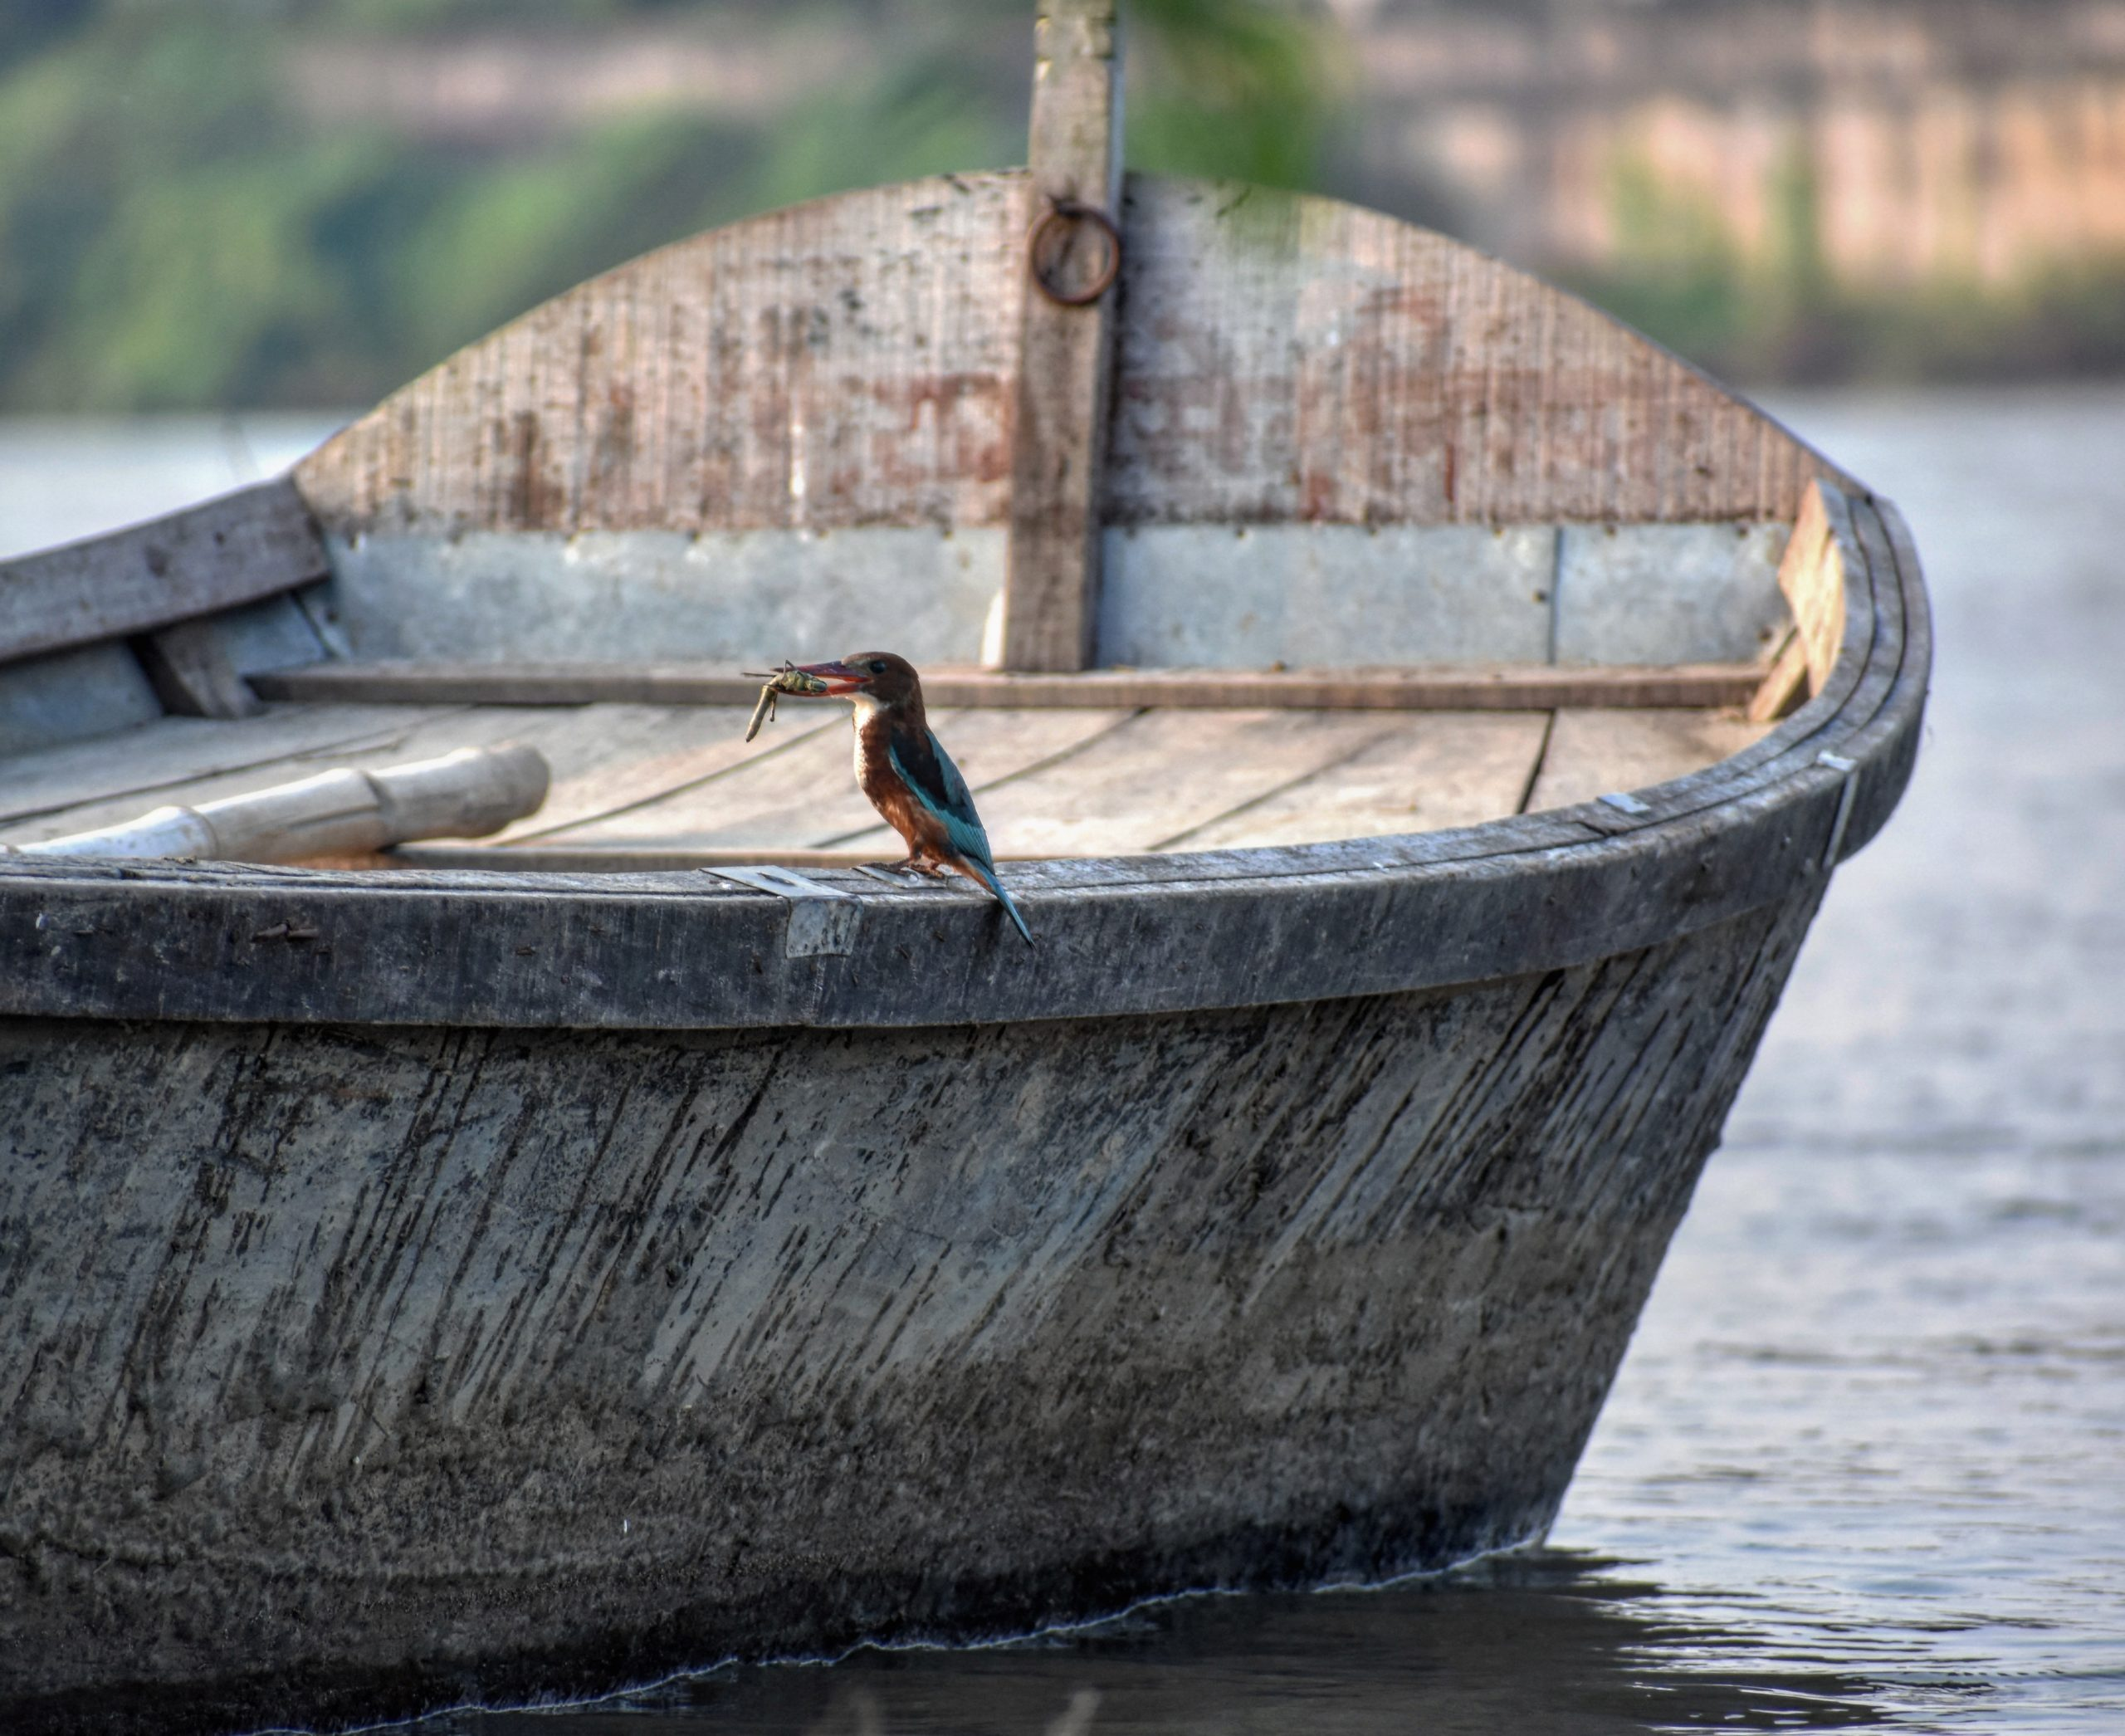 Waterbird catching its Prey on a Boat